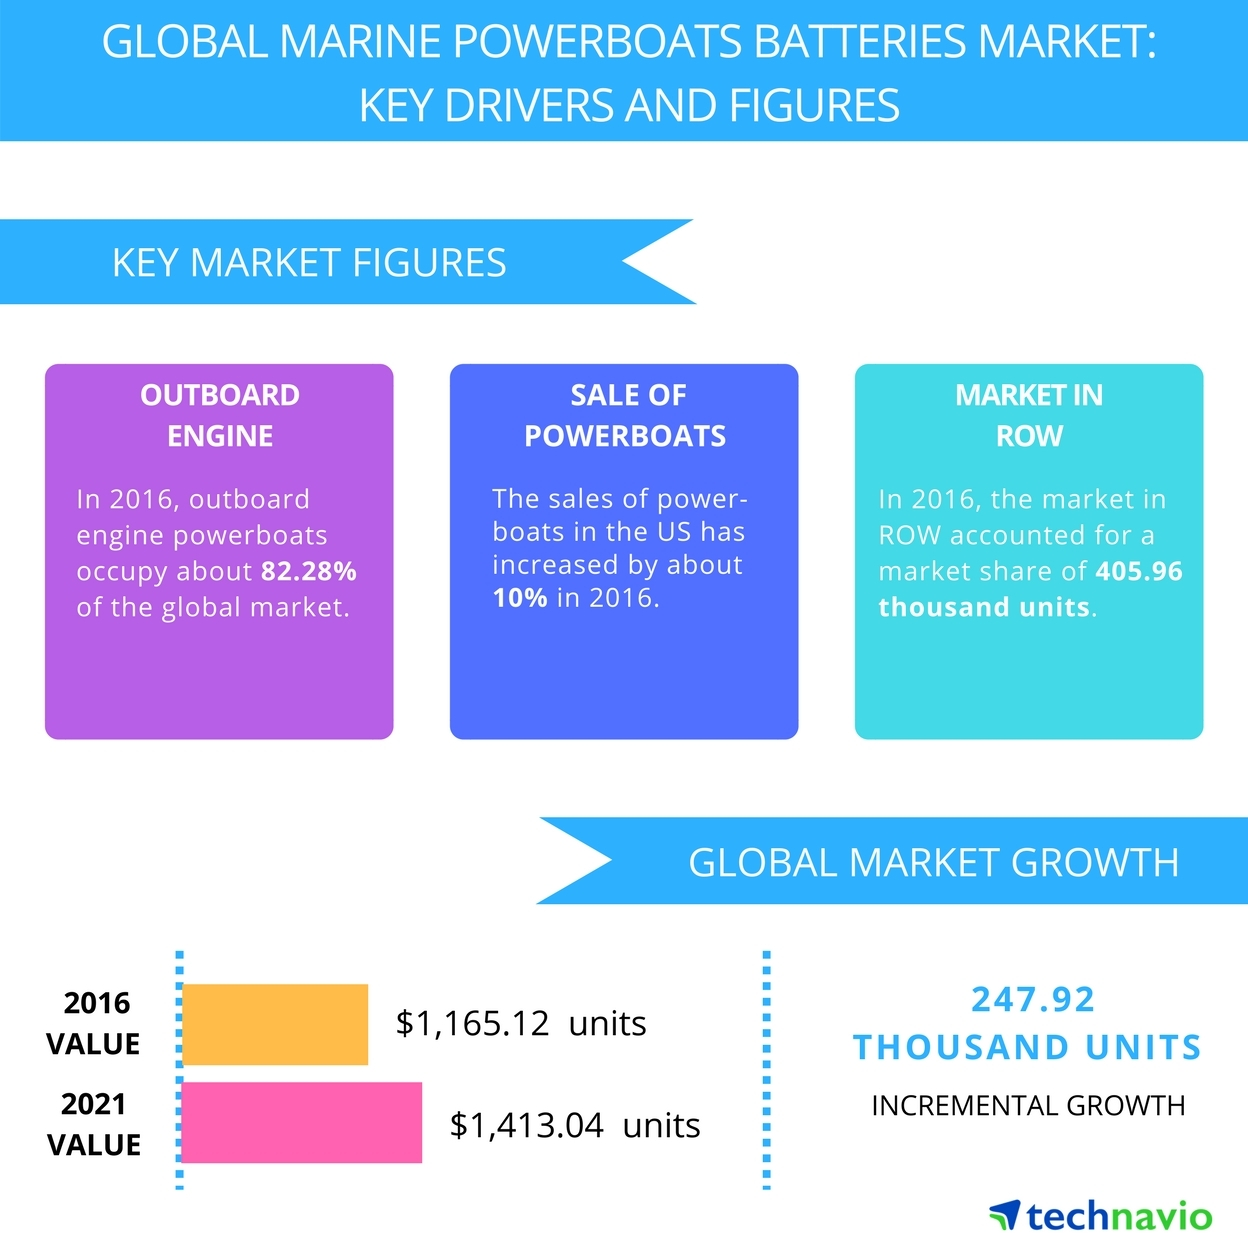 Technavio has announced the release of their 'Global Marine Powerboats Batteries Market 2017-2021' report. (Graphic: Business Wire)